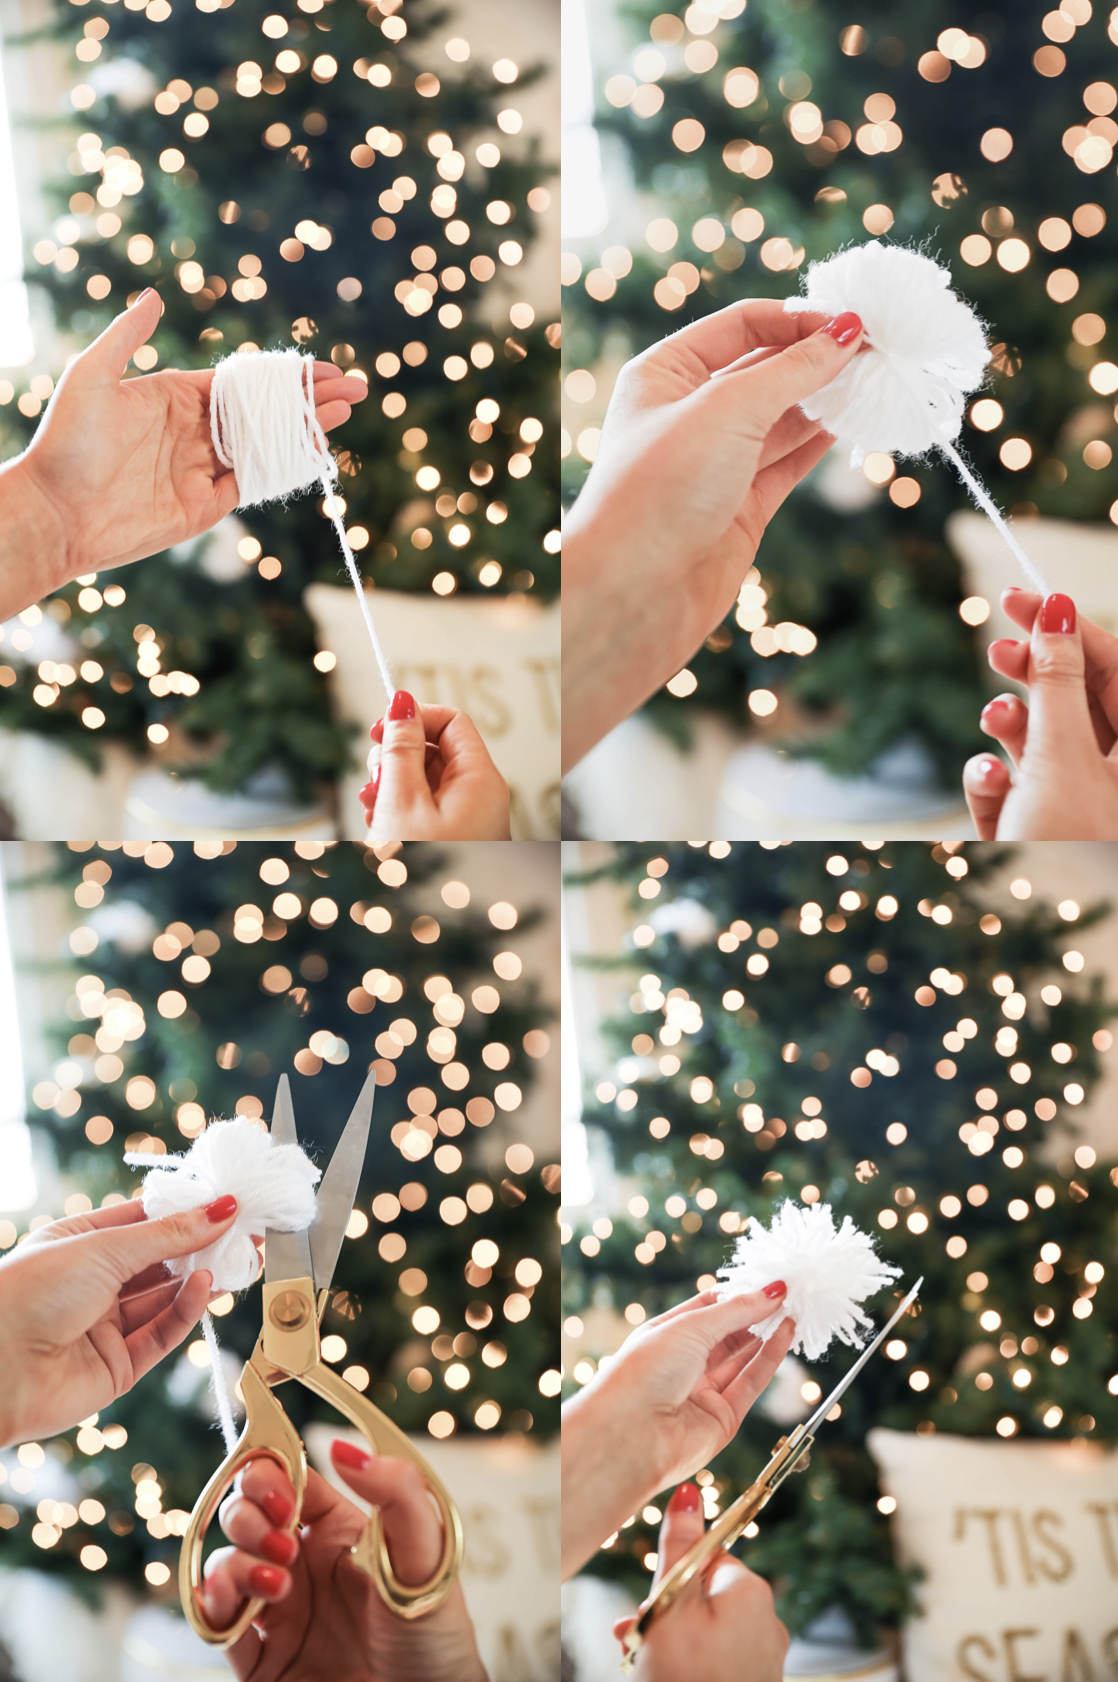 How to make pom poms! DIY pom poms made with yarn Holiday DIY decor! Learn how to make DIY snowball ornaments, tassel ornaments, pom pom ornaments, pom pom pillows, and pom pom garlands! Details on daily dose of charm lauren lindmark